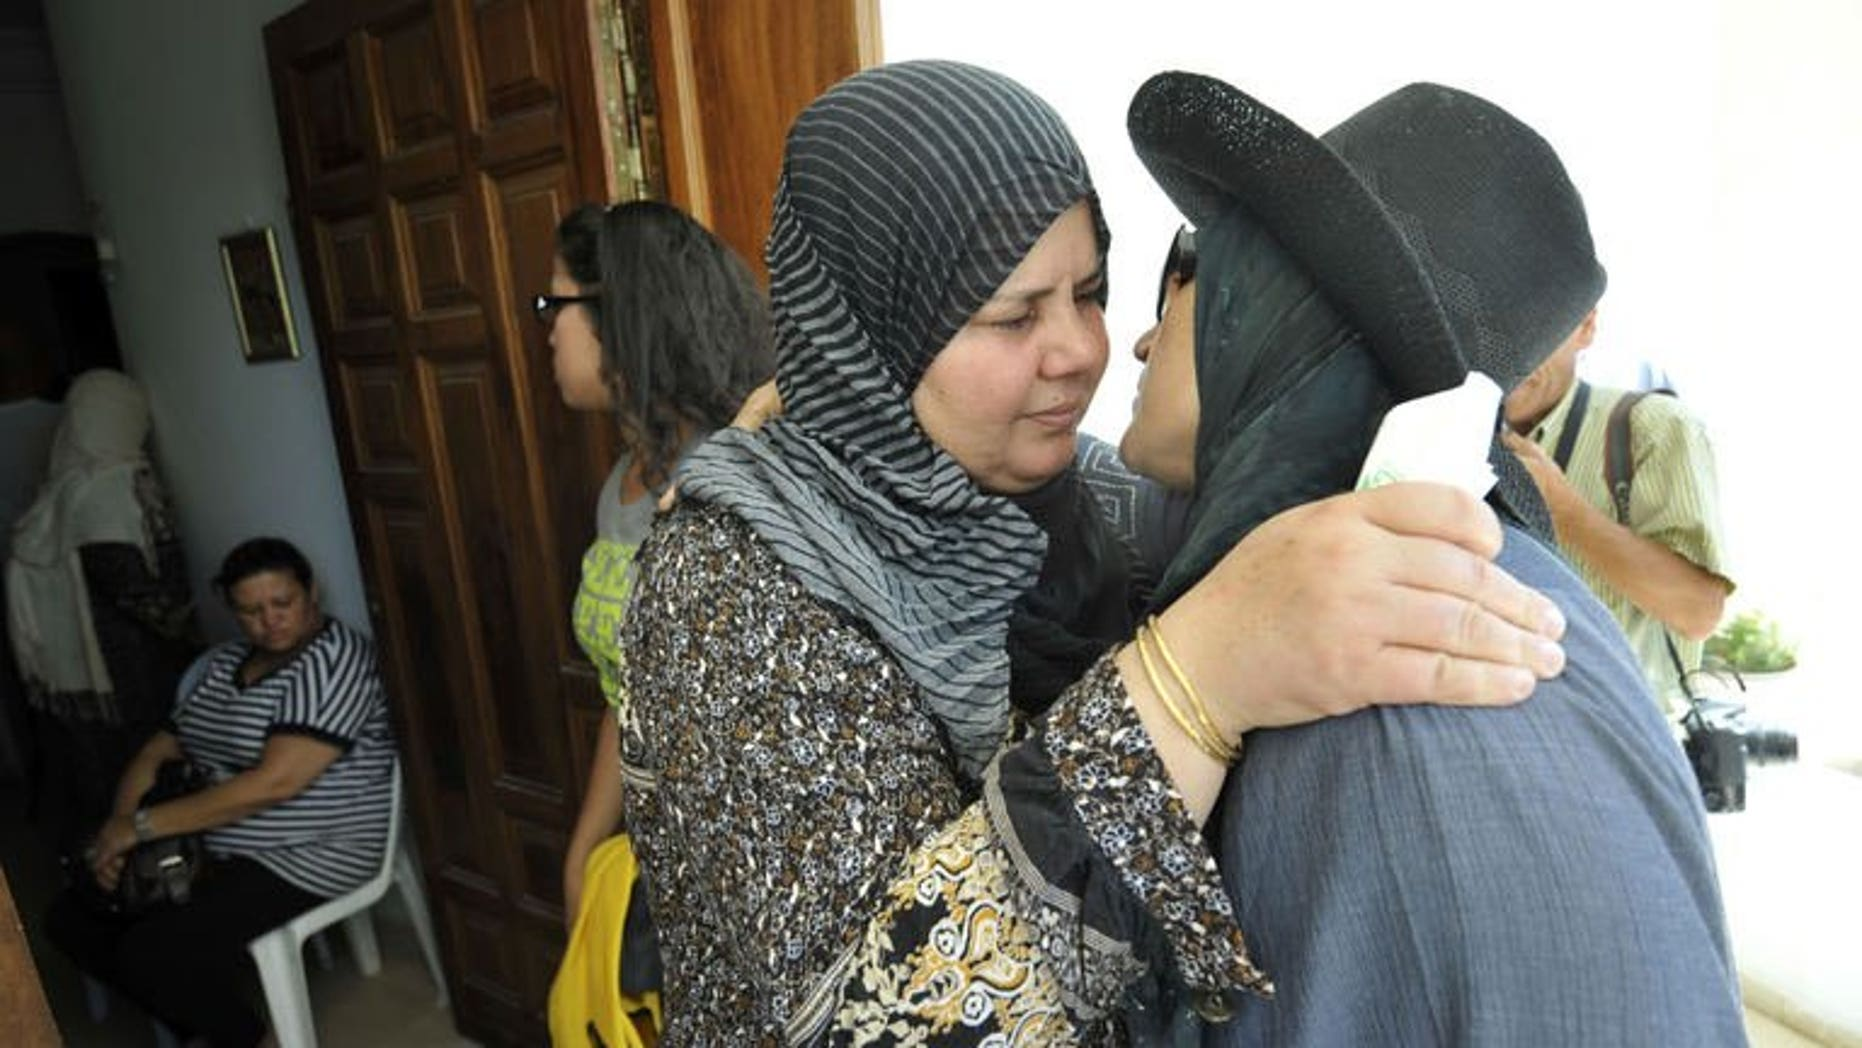 Mubarka Brahmi (centre), the wife of slain opposition politician Mohamed Brahmi, receives condolences from Tunisians at her house in Ariana,Tunisia on July 25, 2013. The politician's funeral procession left his home under military escort on Saturday.